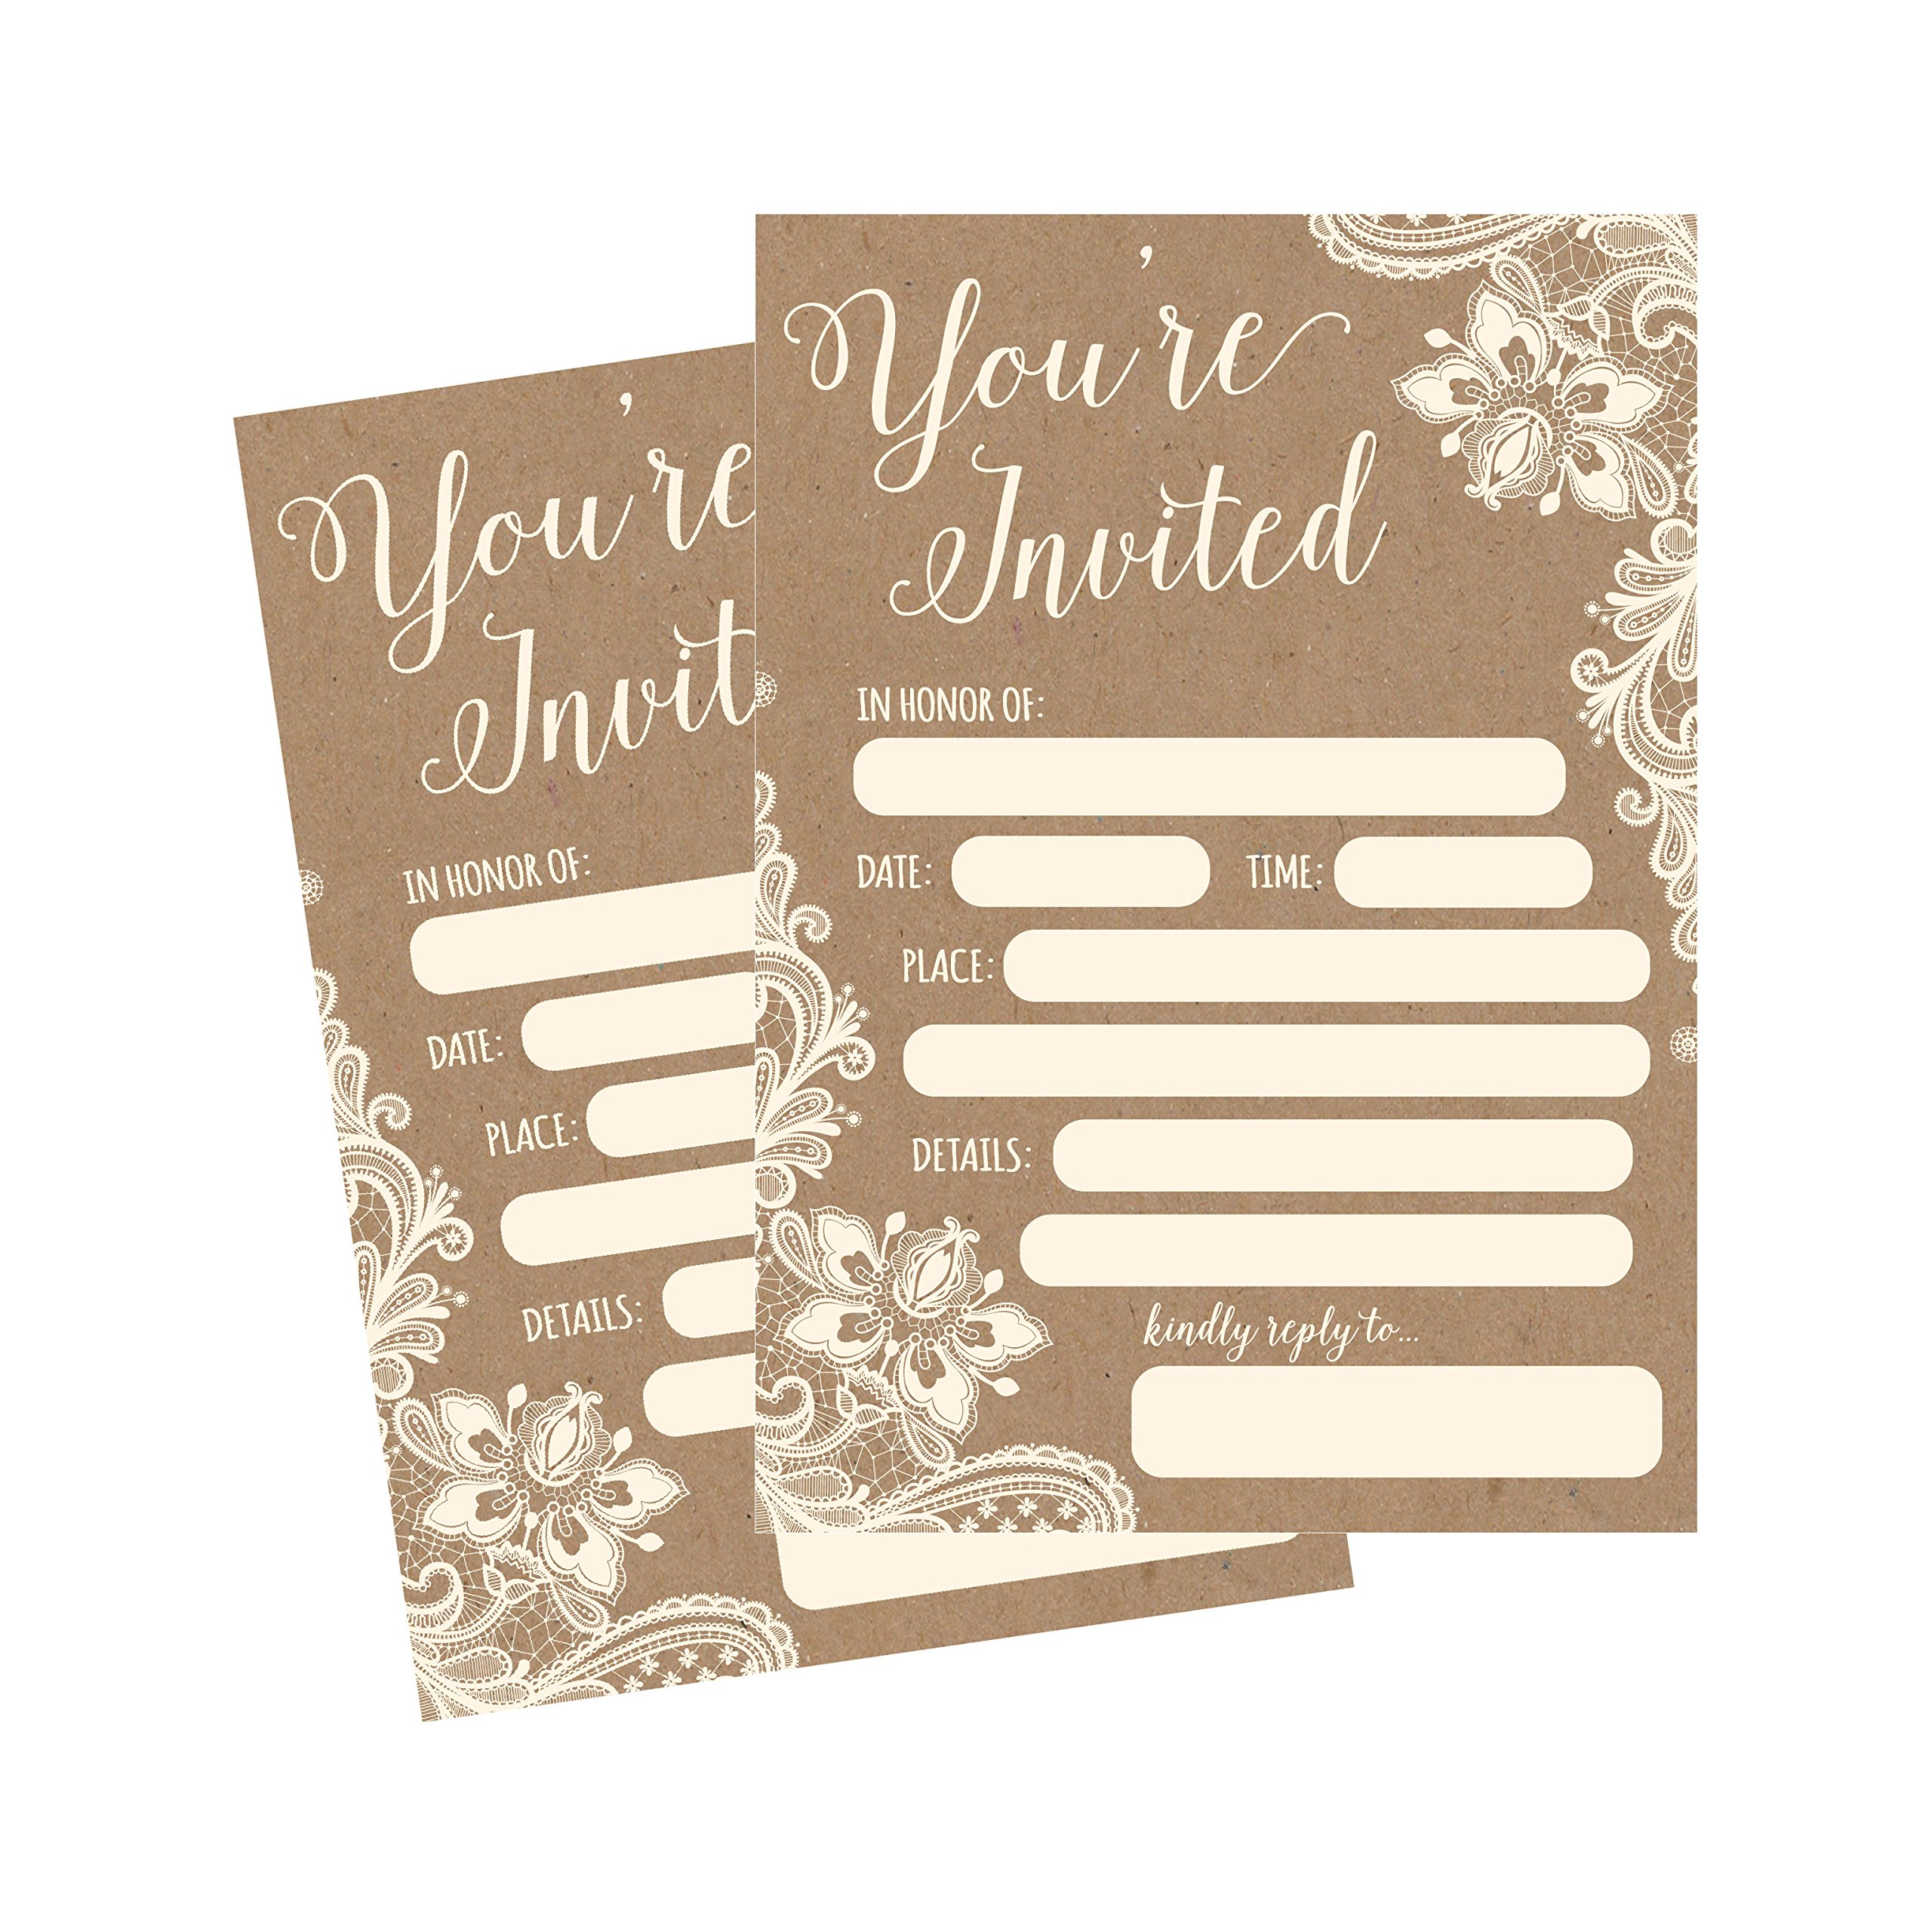 50 Fill In Invitations, Burlap and Lace, Kraft, Wedding Invitations, Bridal Shower Invitations, Rehearsal Dinner, Dinner Invites, Baby Shower Invite, Bachelorette Party Invites, Engagement, Graduation